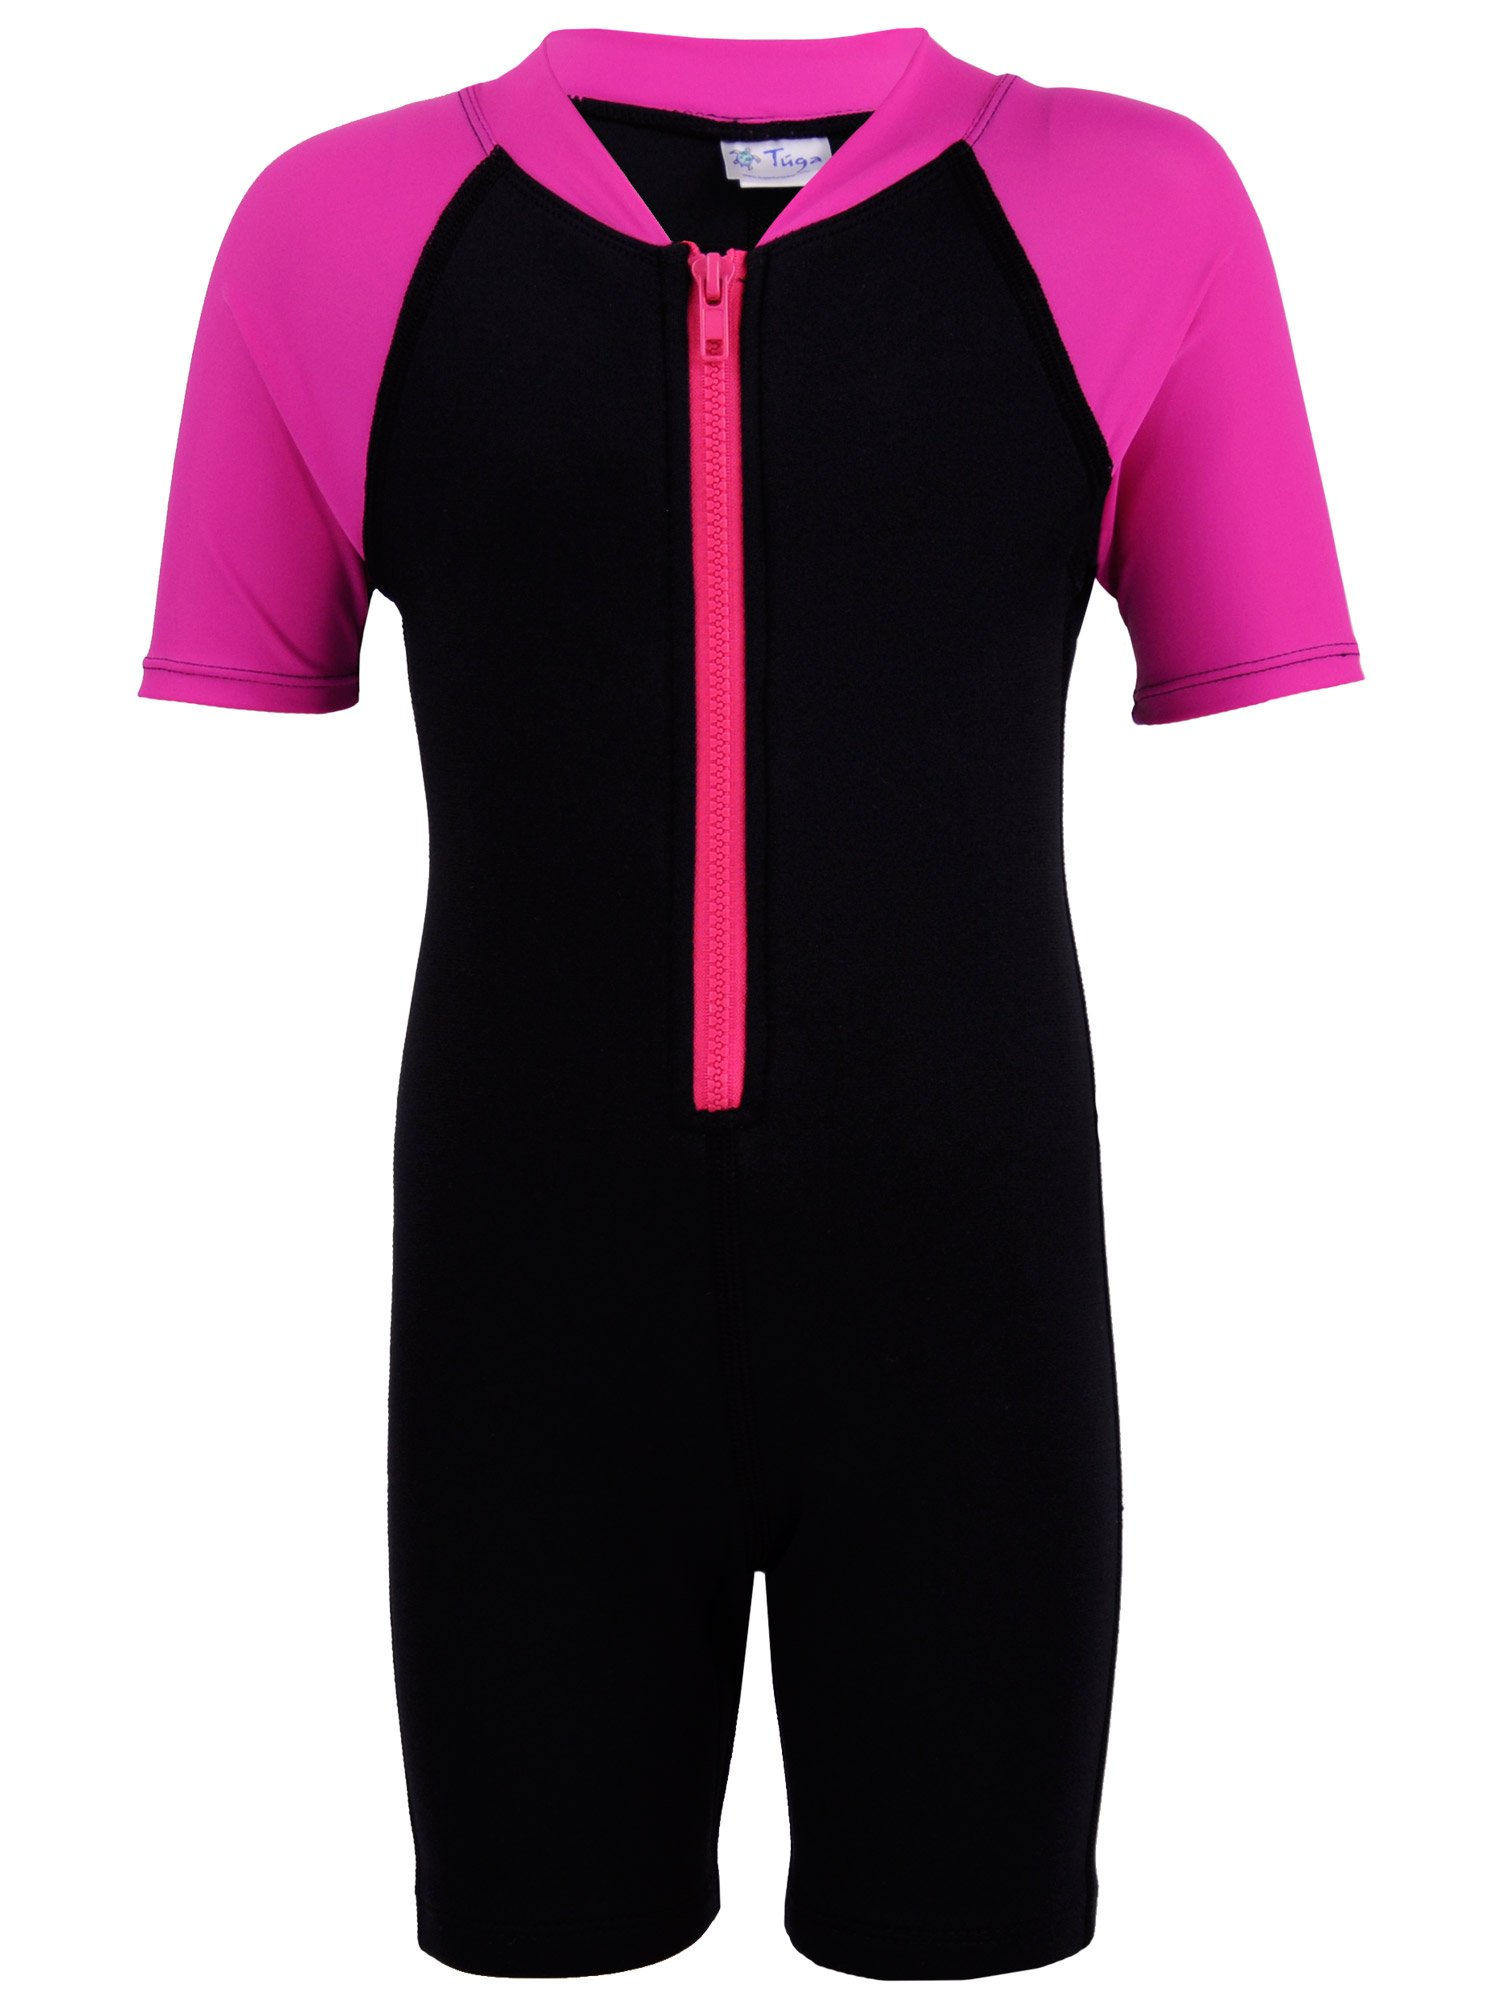 Tuga Girls Shorty 1.5mm Neoprene/Spandex Wetsuit (UPF 50+), Fuchsia, 3 yrs by Tuga Sunwear